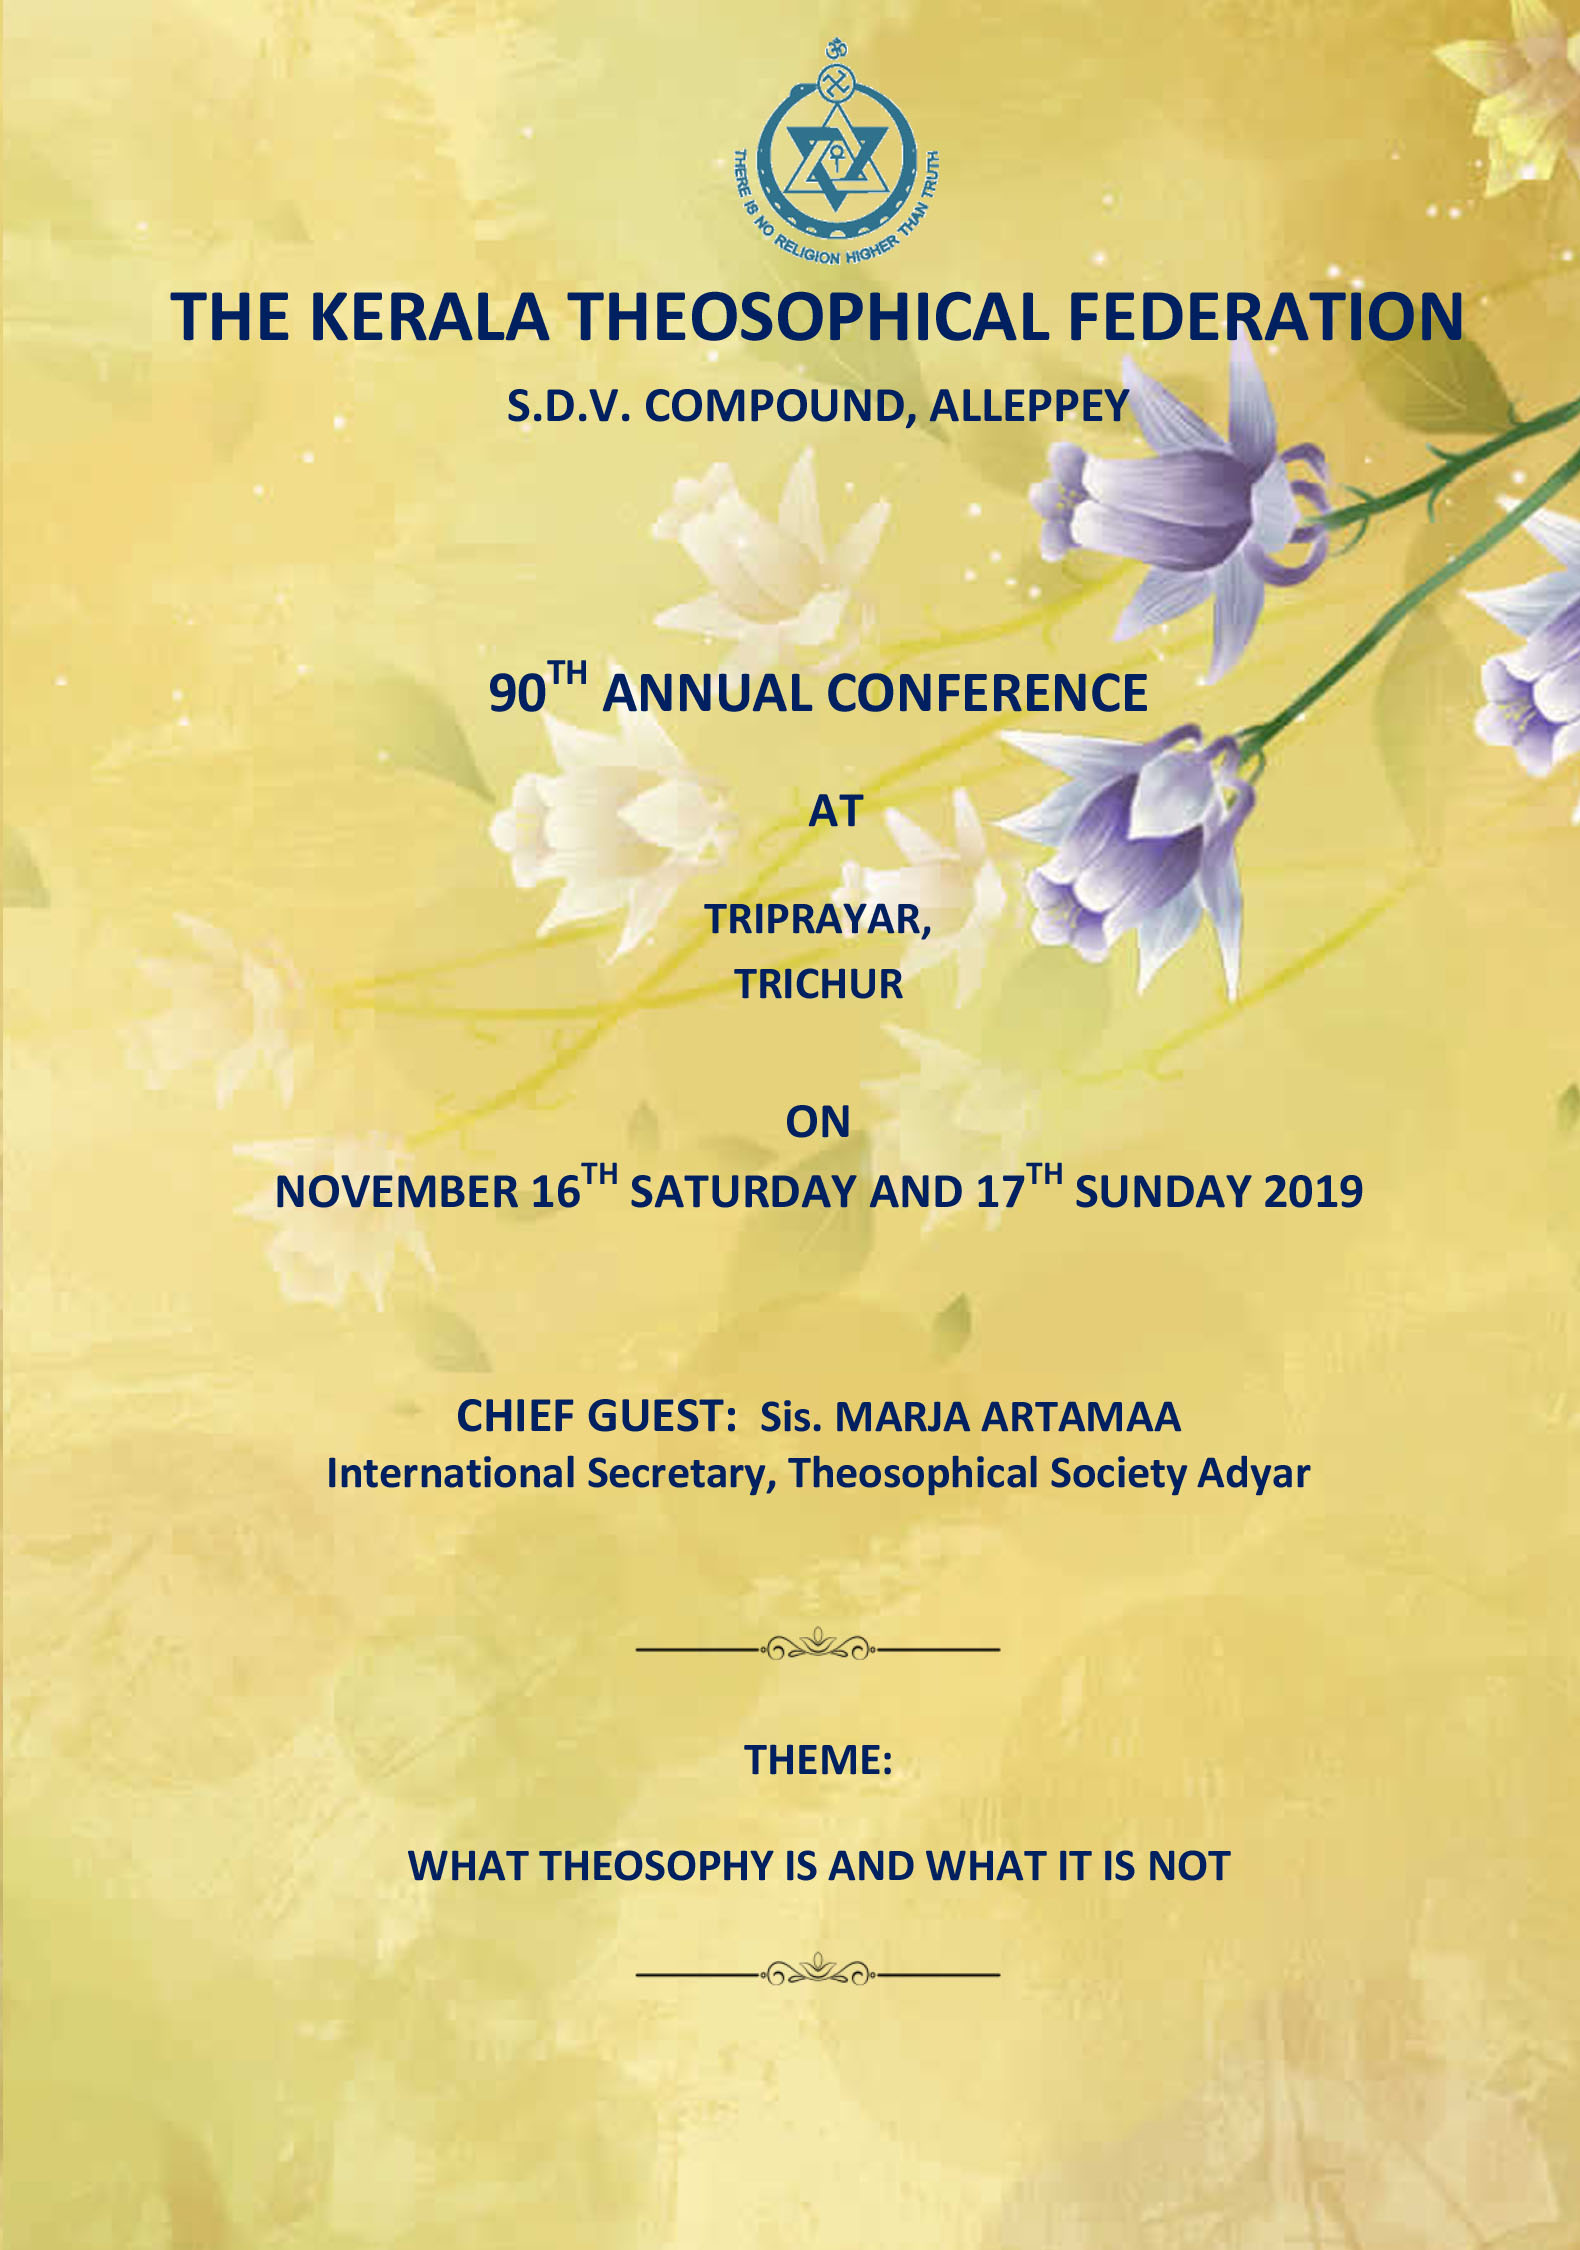 THE KERALA THEOSOPHICAL FEDERATION 90TH ANNUAL CONFERENCE     AT TRIPRAYAR,   TRICHUR ON NOVEMBER 16TH SATURDAY AND 17TH SUNDAY 2019 CHIEF GUEST:  Sis. MARJA ARTAMAA  International Secretary, Theosophical Society Adyar